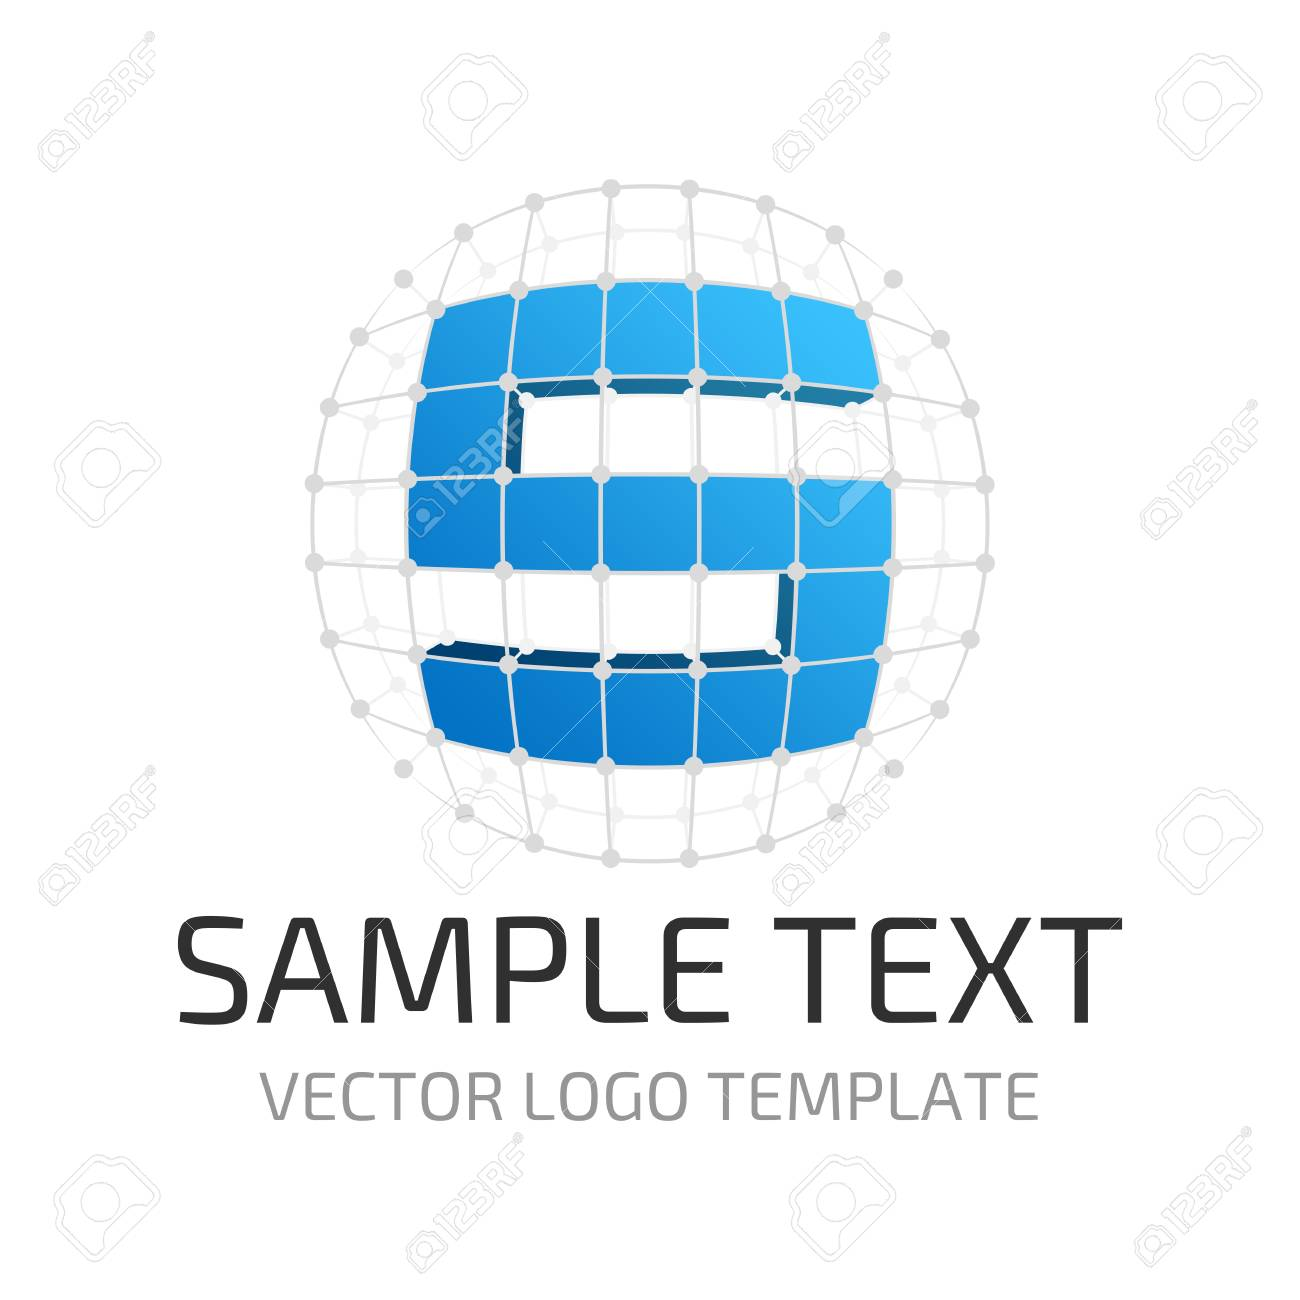 vector logo template letter s icon stylized letter s in the